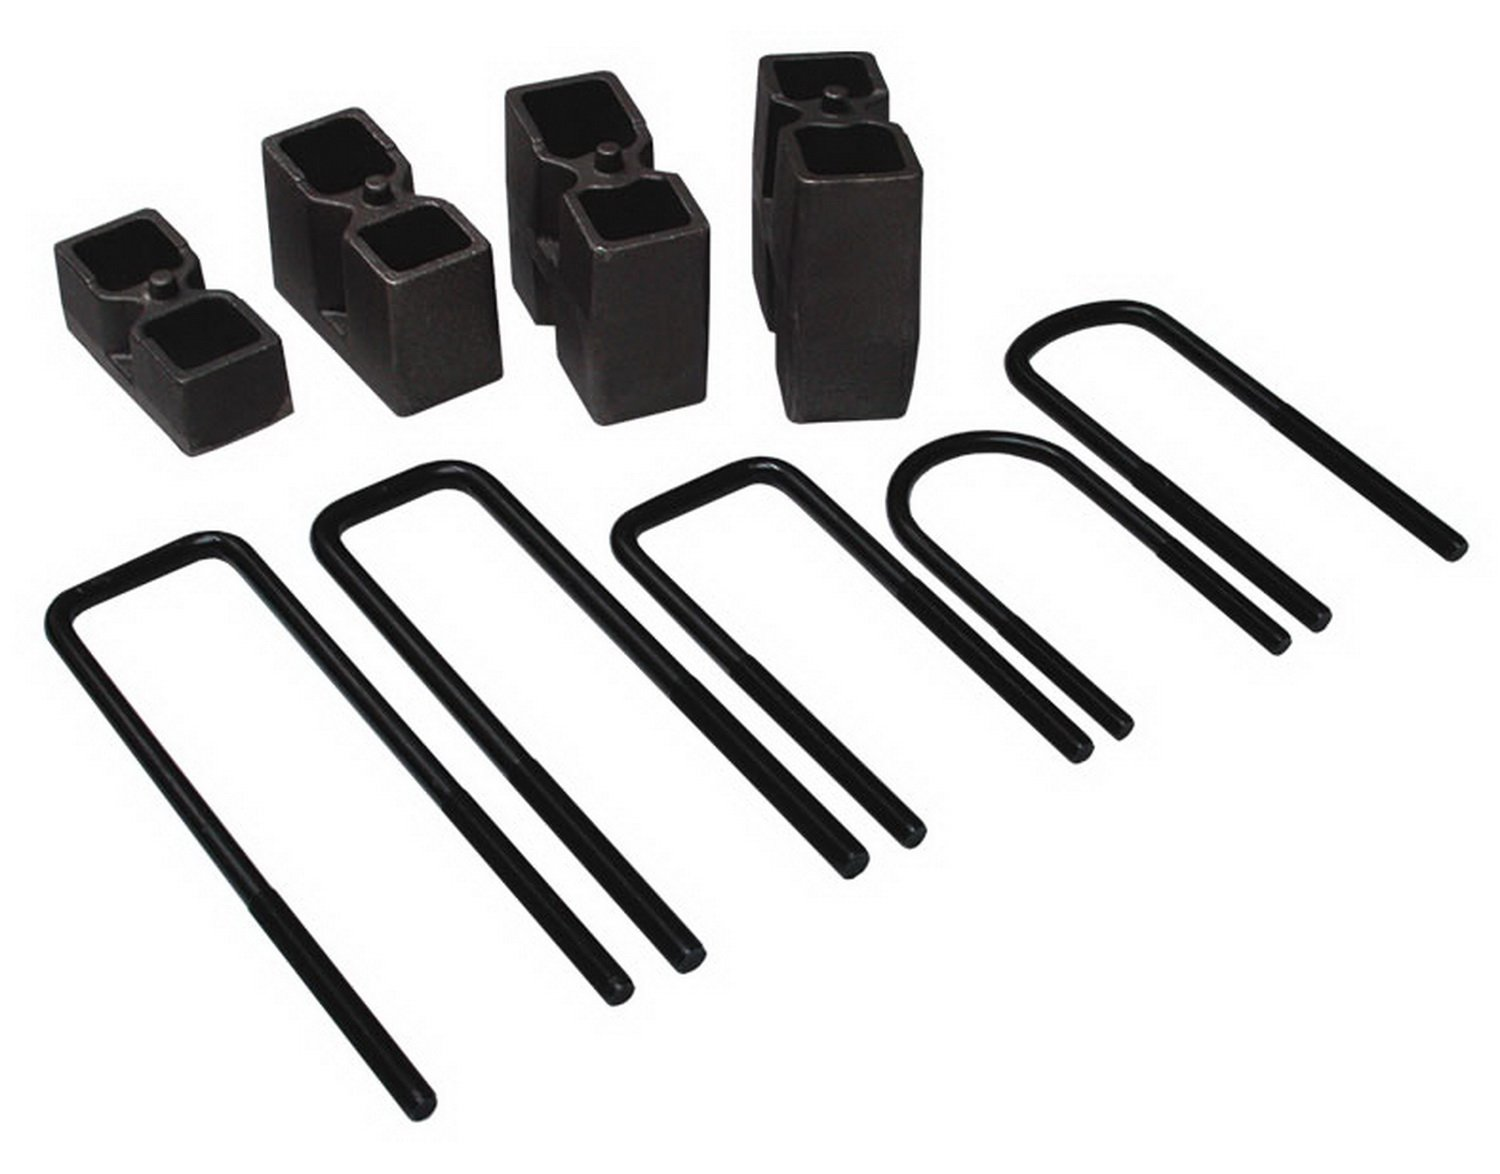 Skyjacker BUK2080 - Skyjacker Blocks & U-Bolt Kits